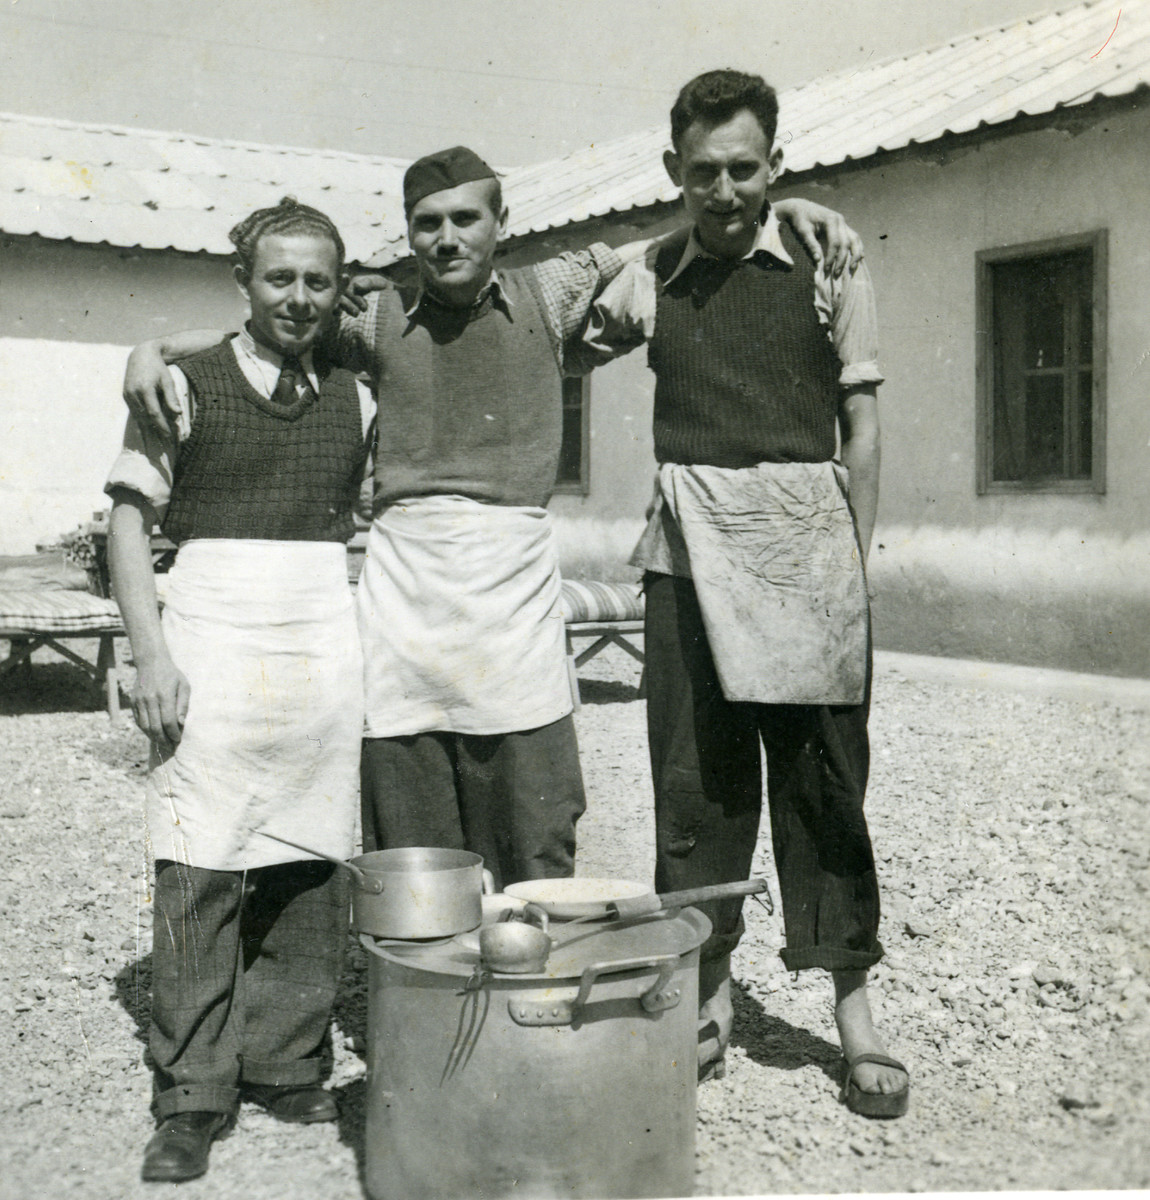 Three men pose behind a soup pot at Ferramonti.  Ernest Hellinger is probably the man in the middle.